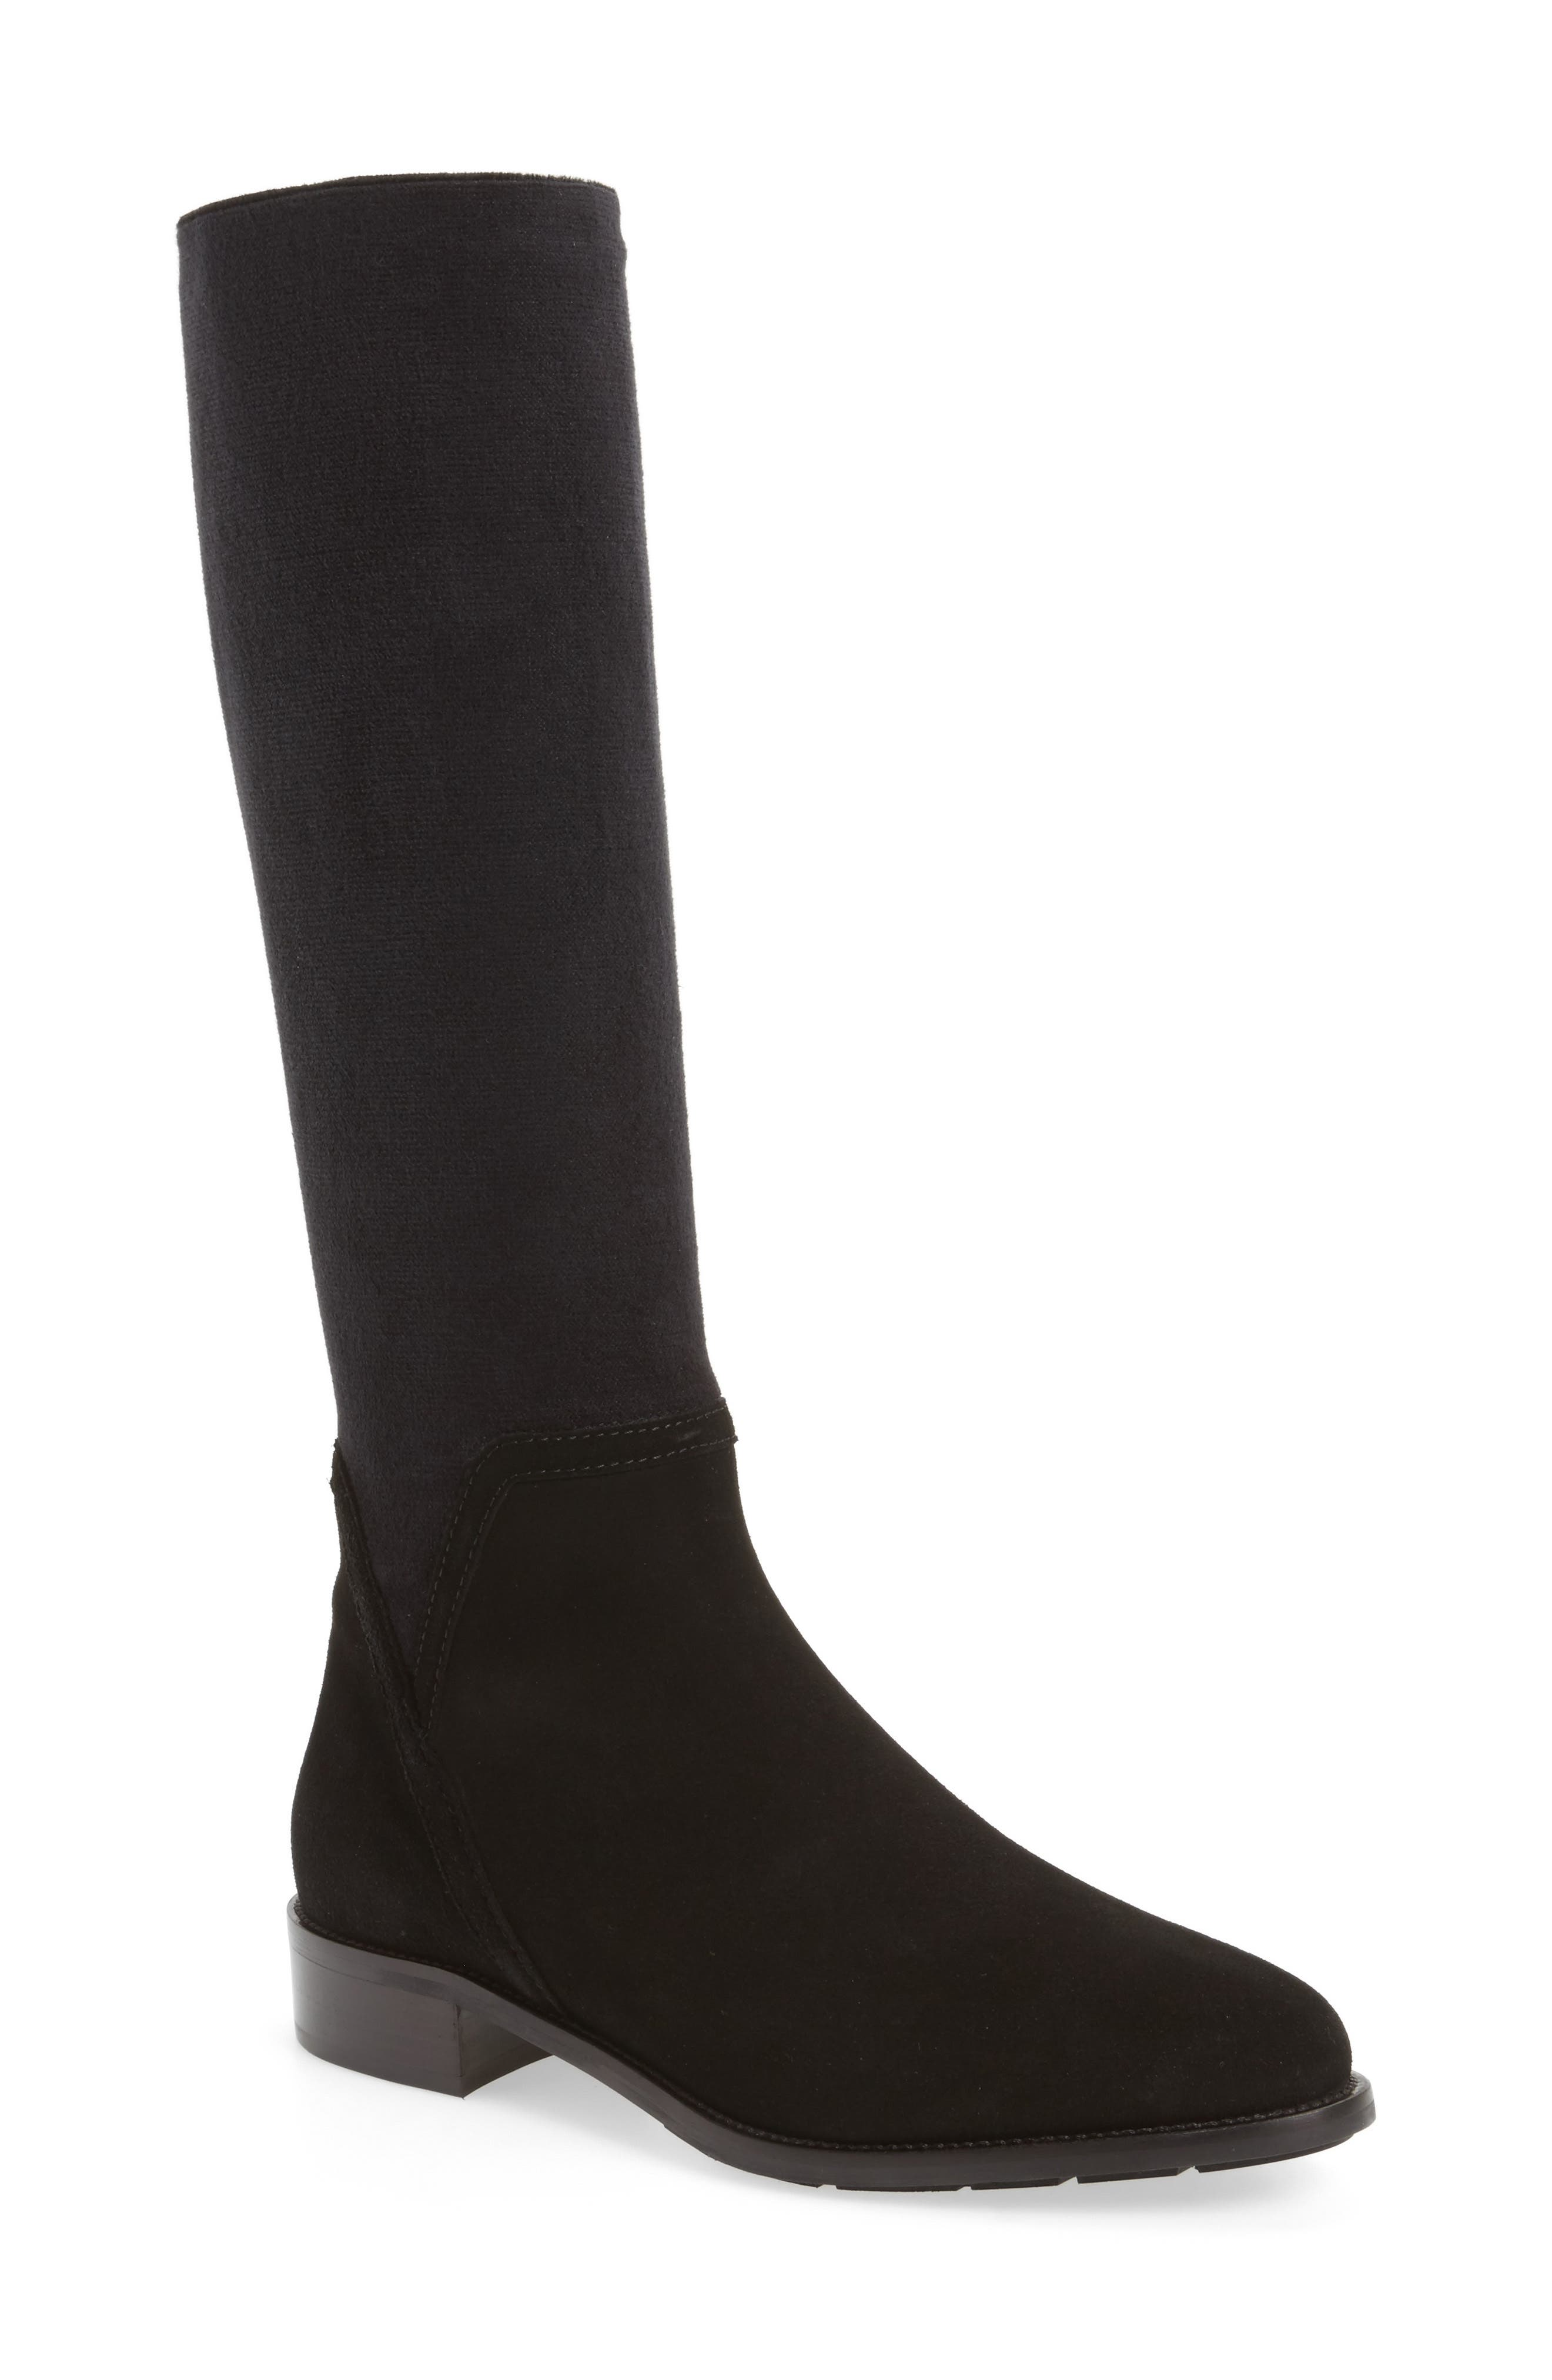 Nicolette Knee High Weatherproof Boot,                             Main thumbnail 1, color,                             001